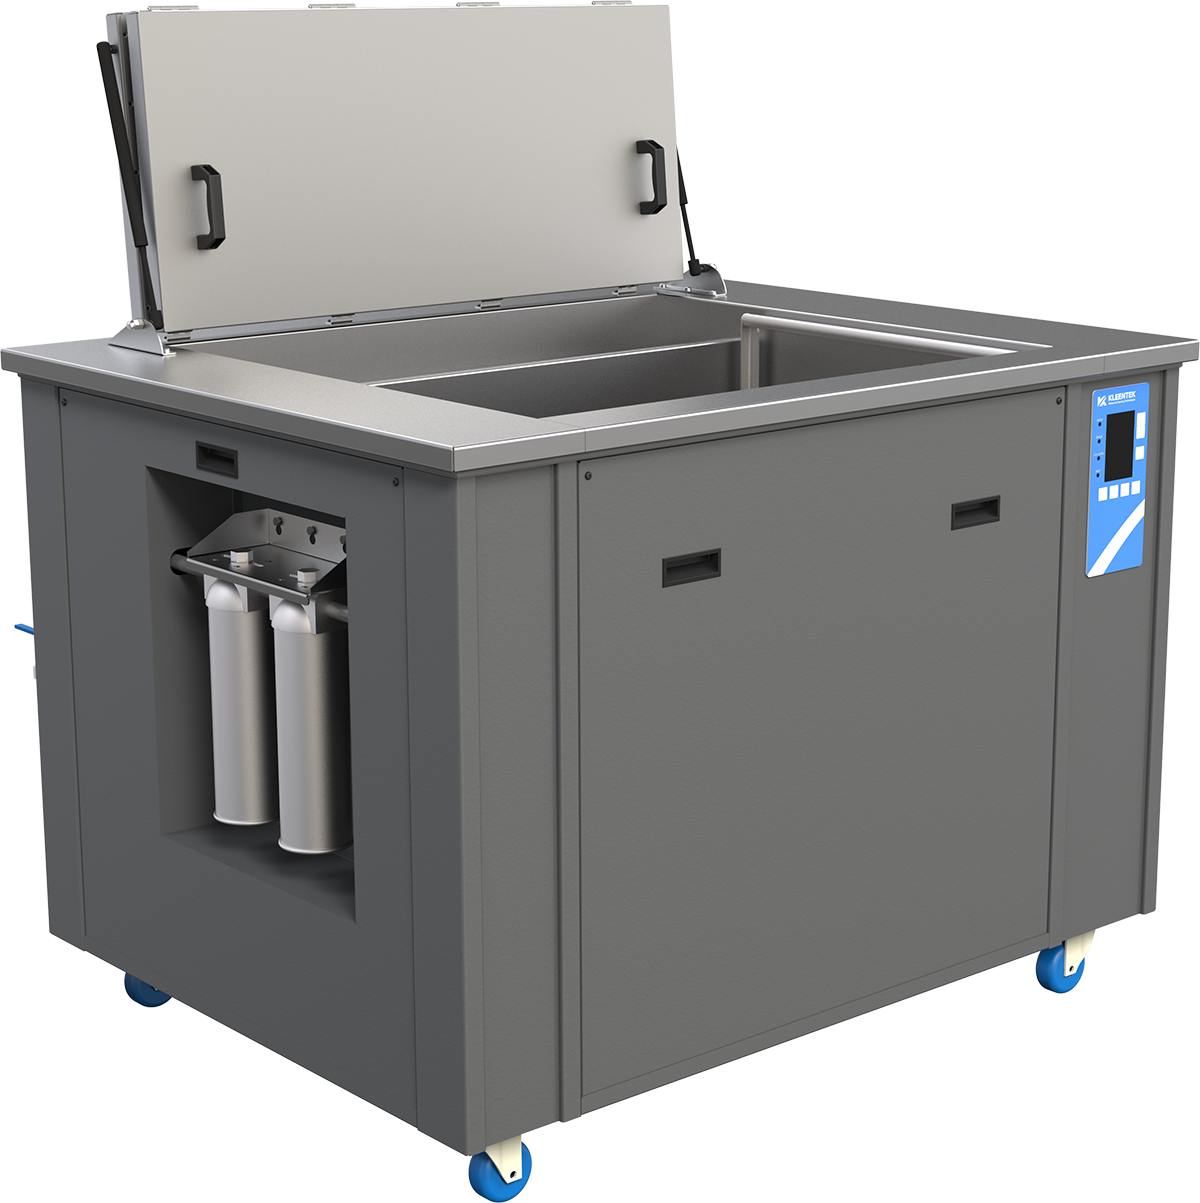 Automotive Ultrasonic Cleaner MK270L